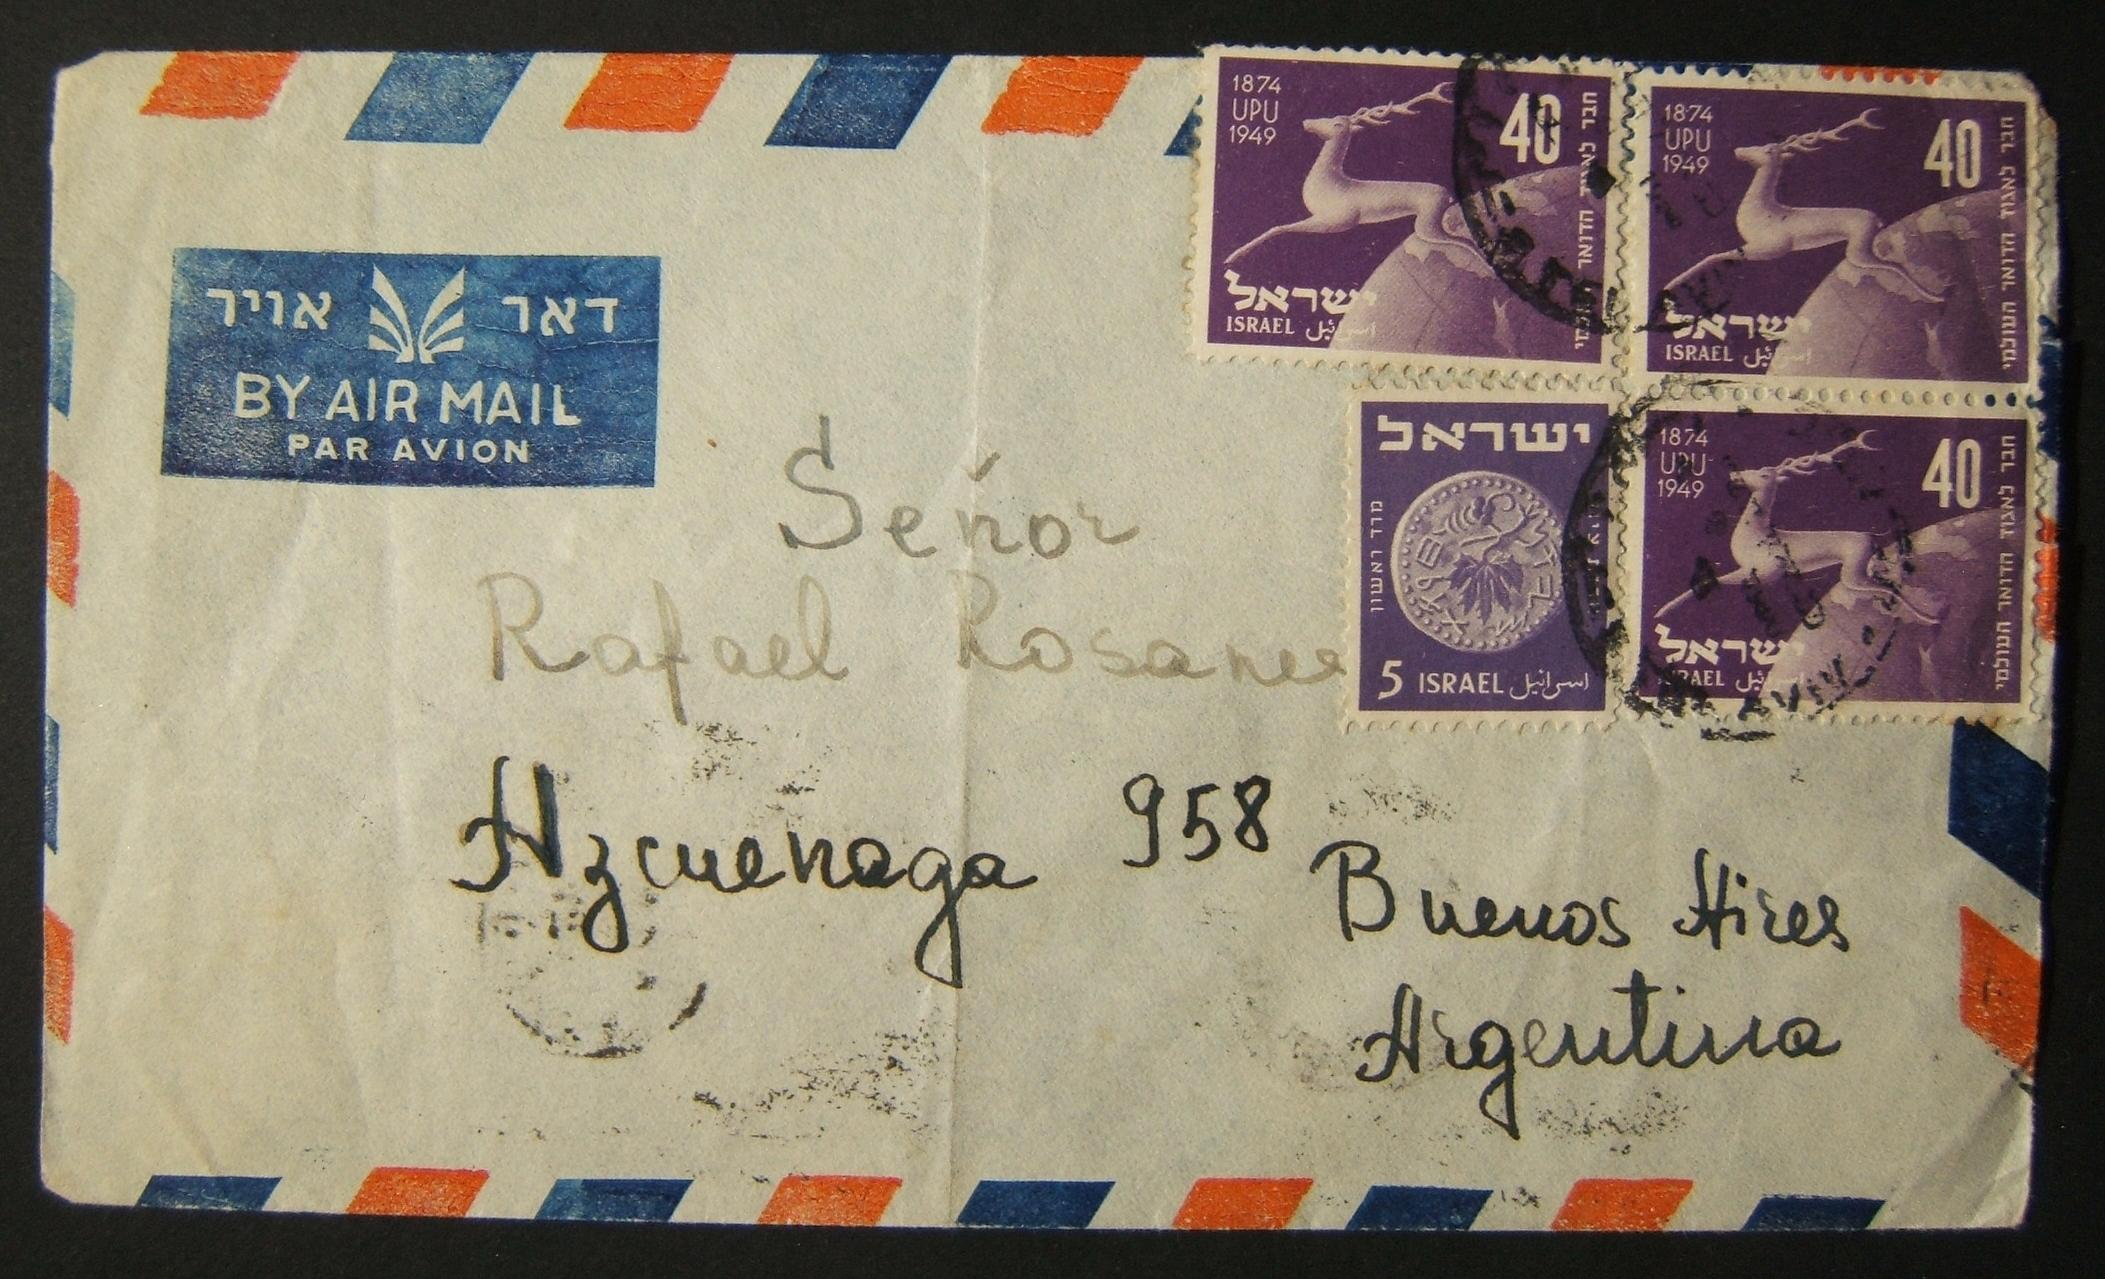 1950 UPU / rates & routes: 4-9-1950 Israeli airmail stationary cover ex TLV to ARGENTINA franked 125pr at FA-2a period rate using mix of 3x 40pr (Ba27) + 5pr 1949 2nd Coinage (Ba22